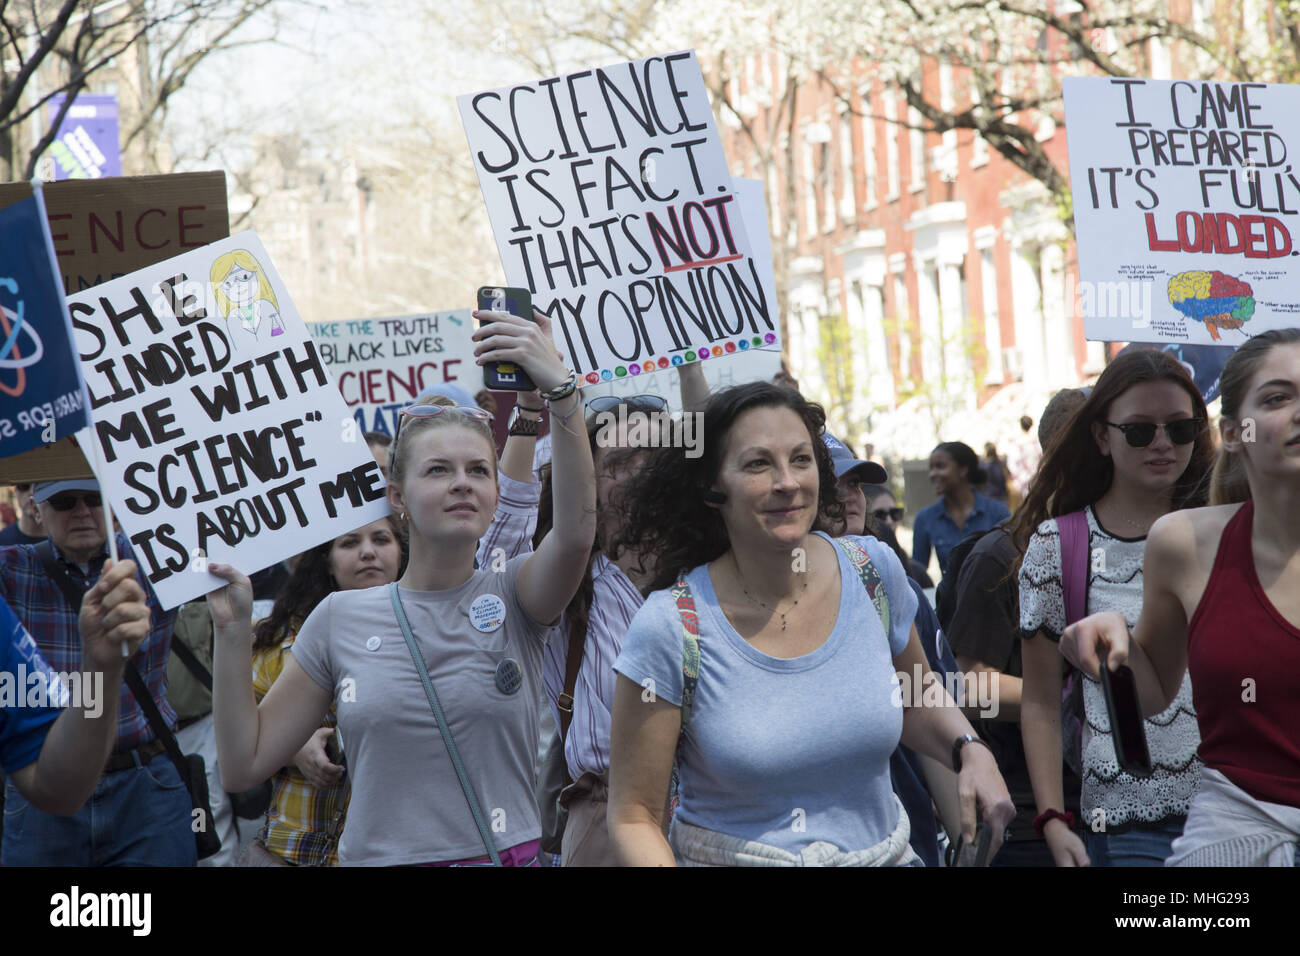 2nd annual March For Science was held in many cities in conjunction with Earth Day.  (New York City) The march is a non-partisan movement to celebrate science and the role it plays in everyday lives. The goals of the marches and rallies are to emphasize that science upholds the common good and to call for evidence-based policy in the public's best interest. - Stock Image